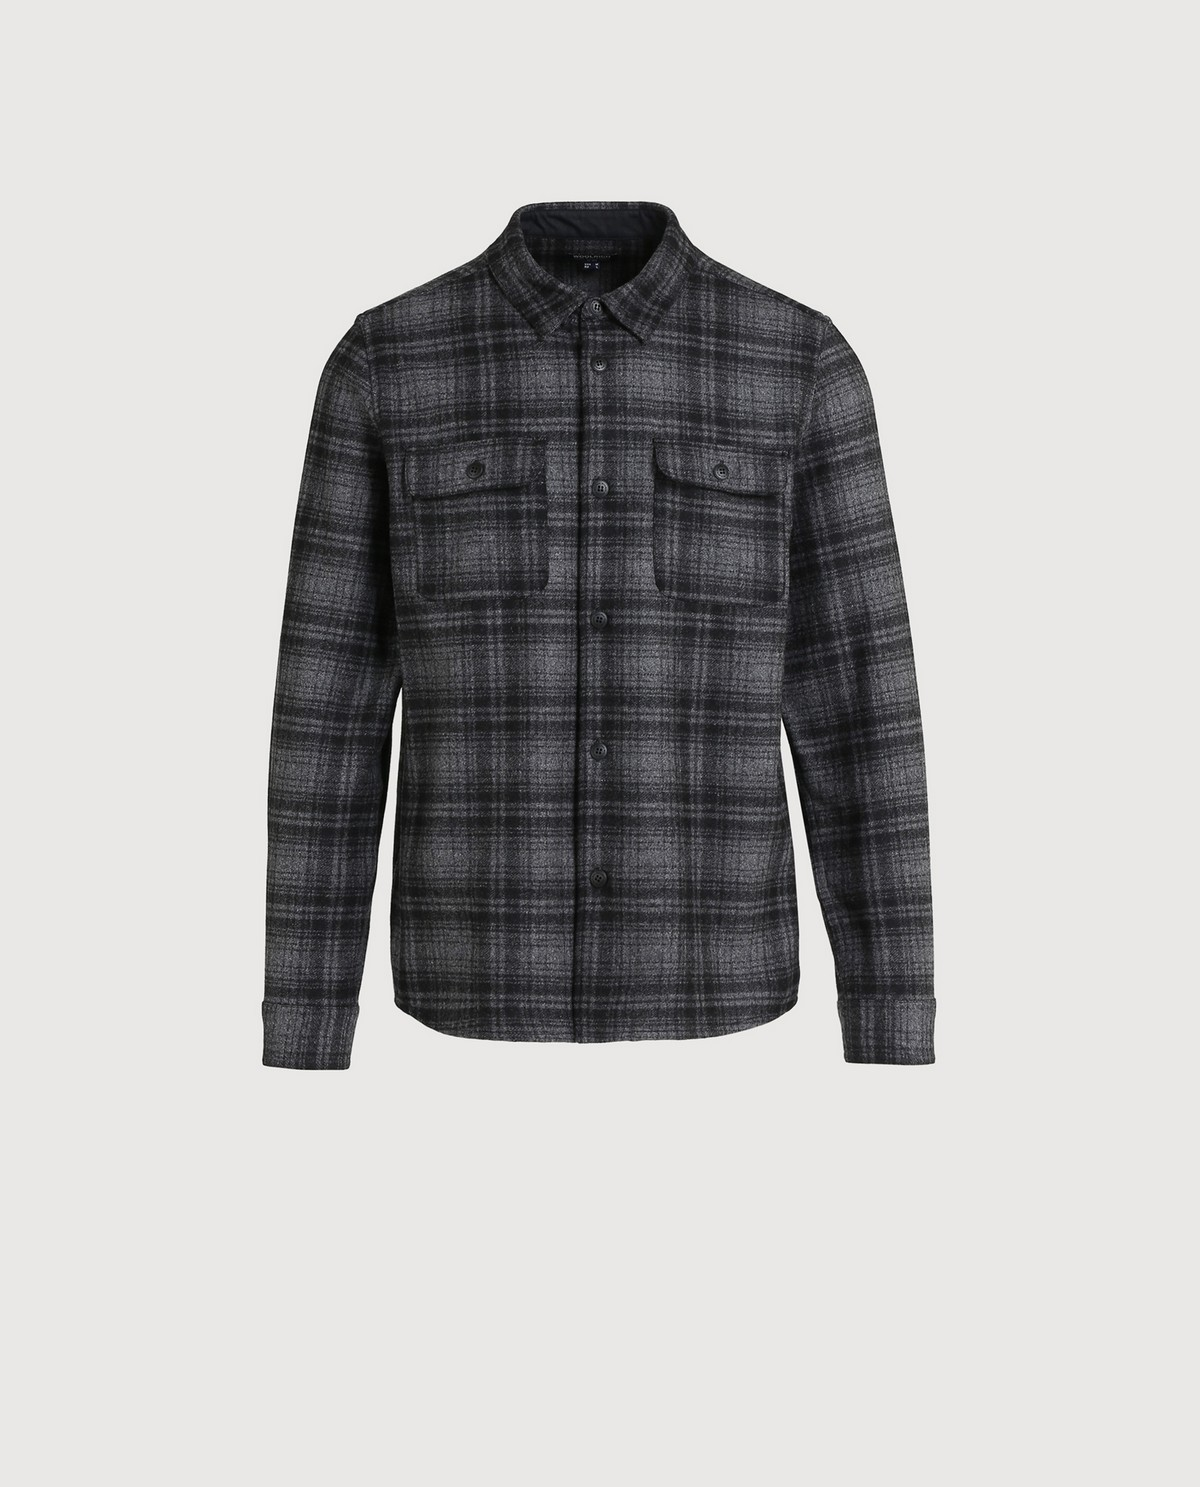 Woolrich capsule Iconic Pack